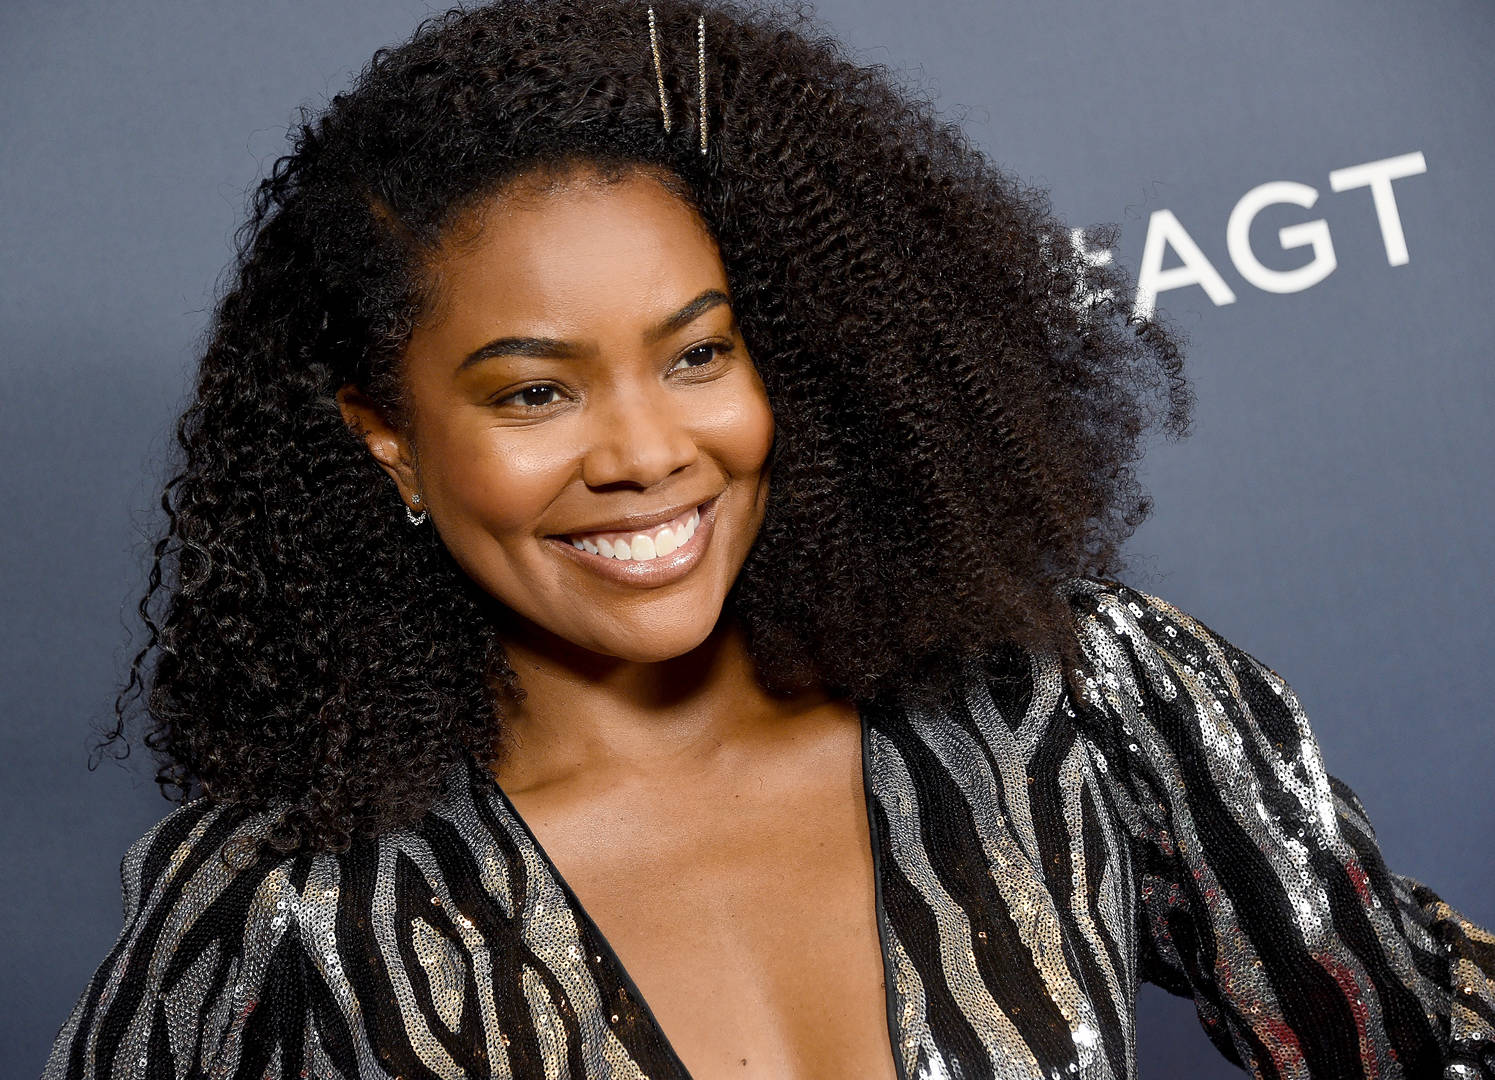 Nick Cannon Expresses Support For Gabrielle Union Amid Terry Crews Debacle